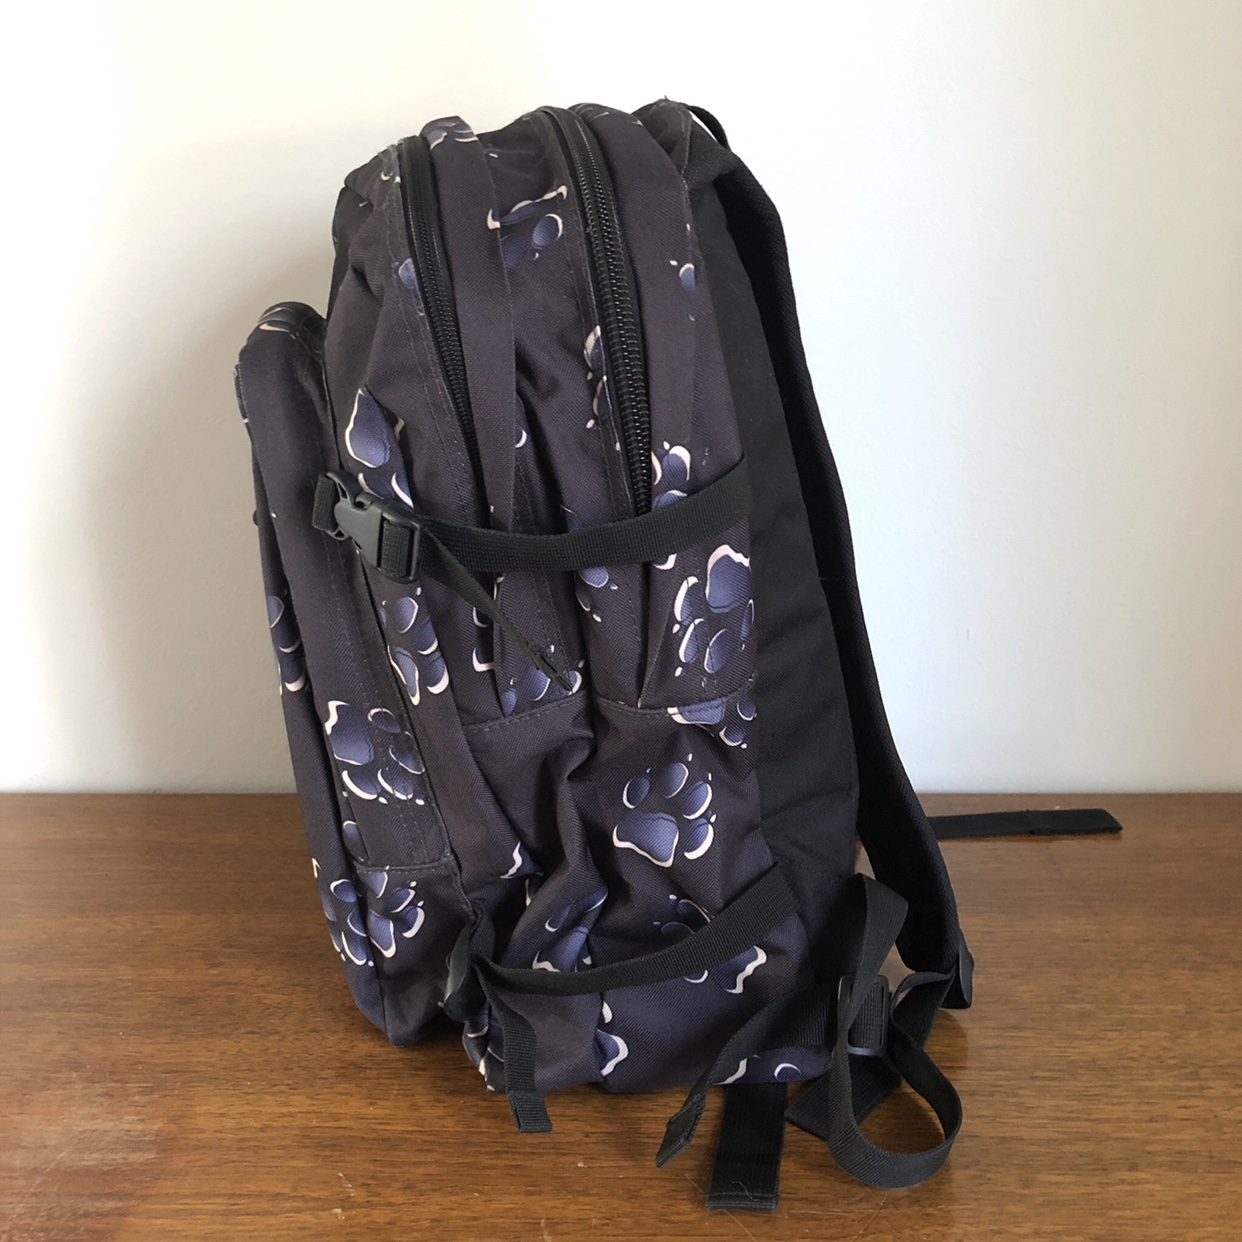 90s Jack Wolfskin backpack Black with navy blue paw Depop